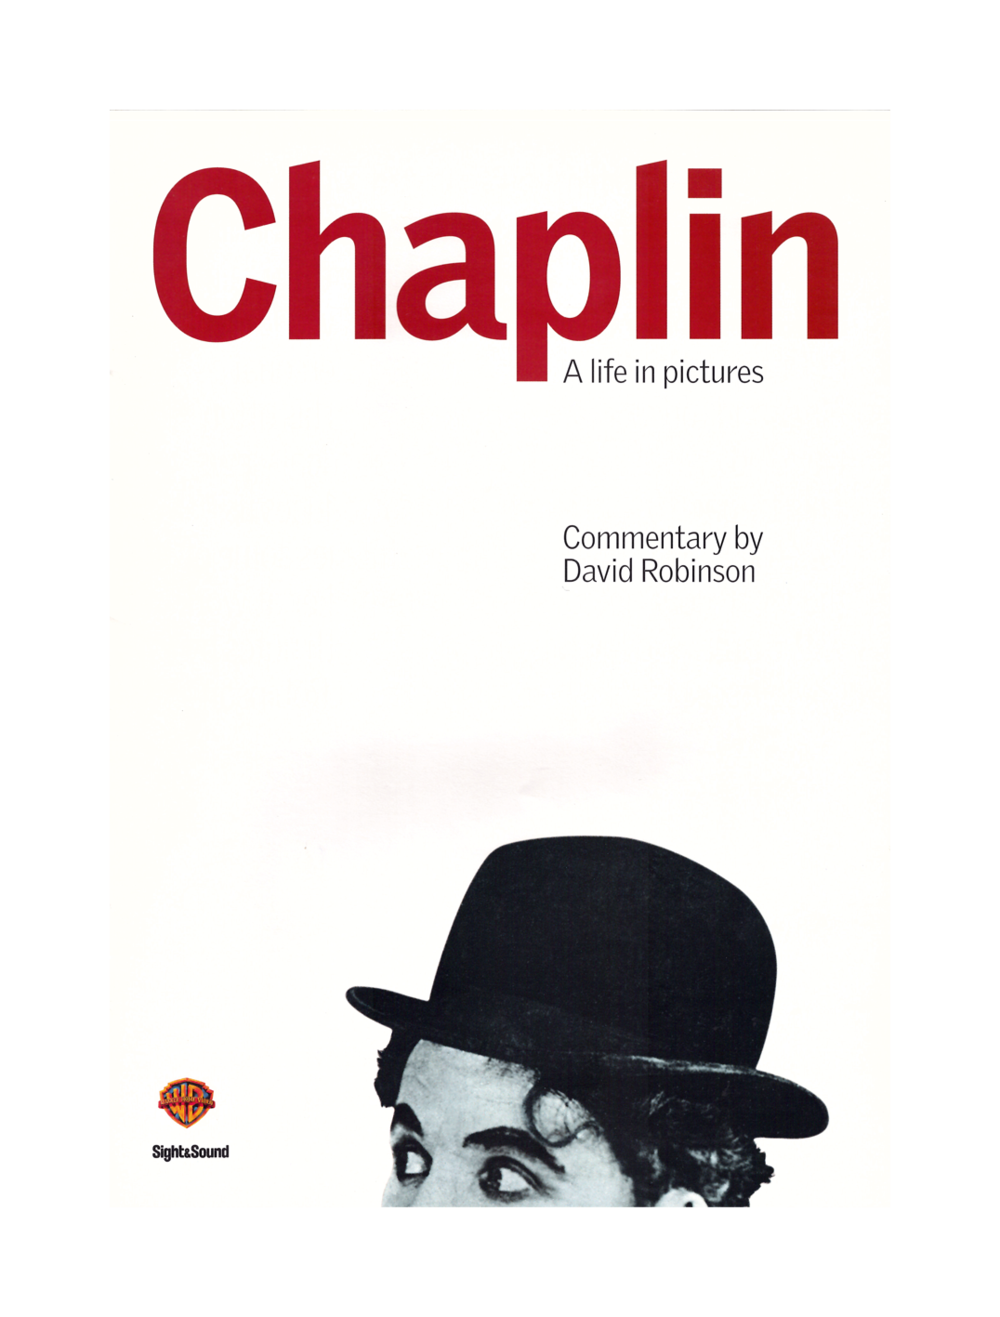 Chaplin_cover.png